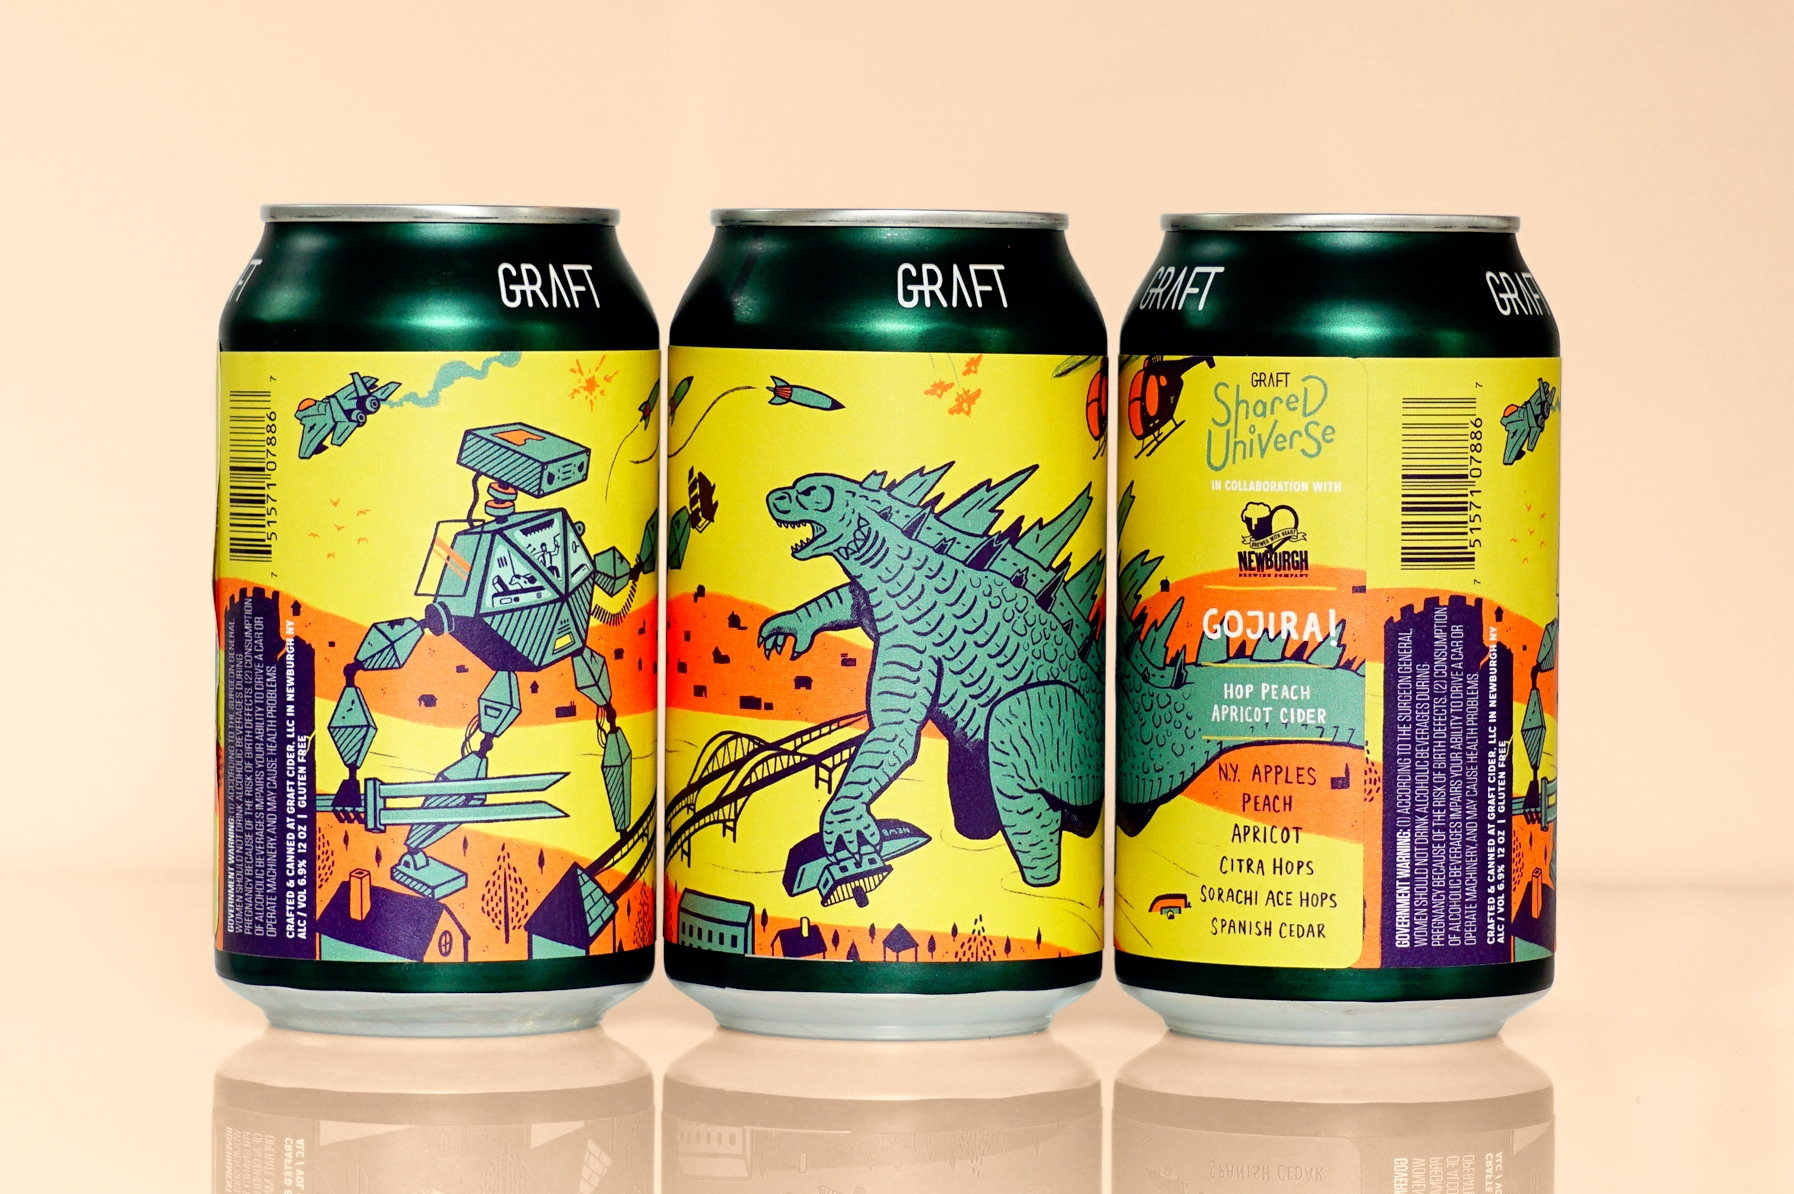 GOJIRA! - OCTOBER 2018 I NEWBURGH BREWING CO.While origins remain foggy, many suspect the beast was born out of neglect towards our planet after years of nuclear testing. Nearby military bases deny any connection, but were first to call upon Nomad and Dog for help. His skin seems to deflect all firepower...when provoked, he expels white-hot magma and his gruesome roars are ear-splitting. Who will find what it takes to strike Gojira down and end this madness?NOTES: Dry hopped peach & apricot cider with Citra & Sorachi Ace hops and aged on Spanish Cedar.